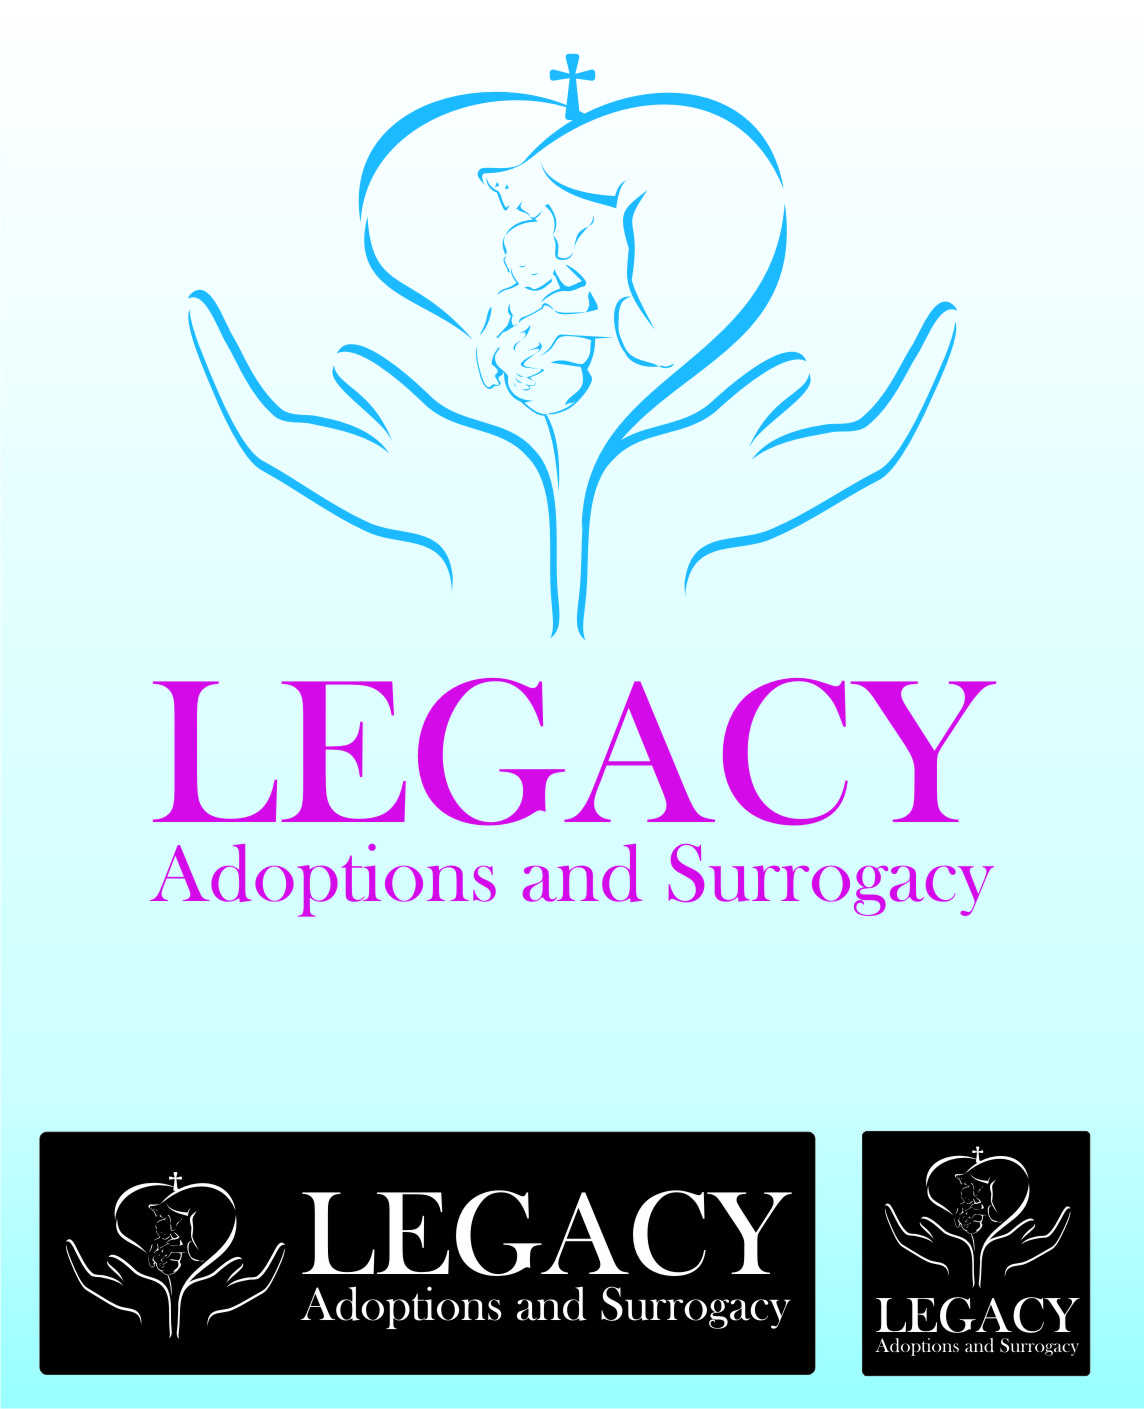 Logo Design by Private User - Entry No. 42 in the Logo Design Contest Legacy Adoptions and Surrogacy Logo Design.